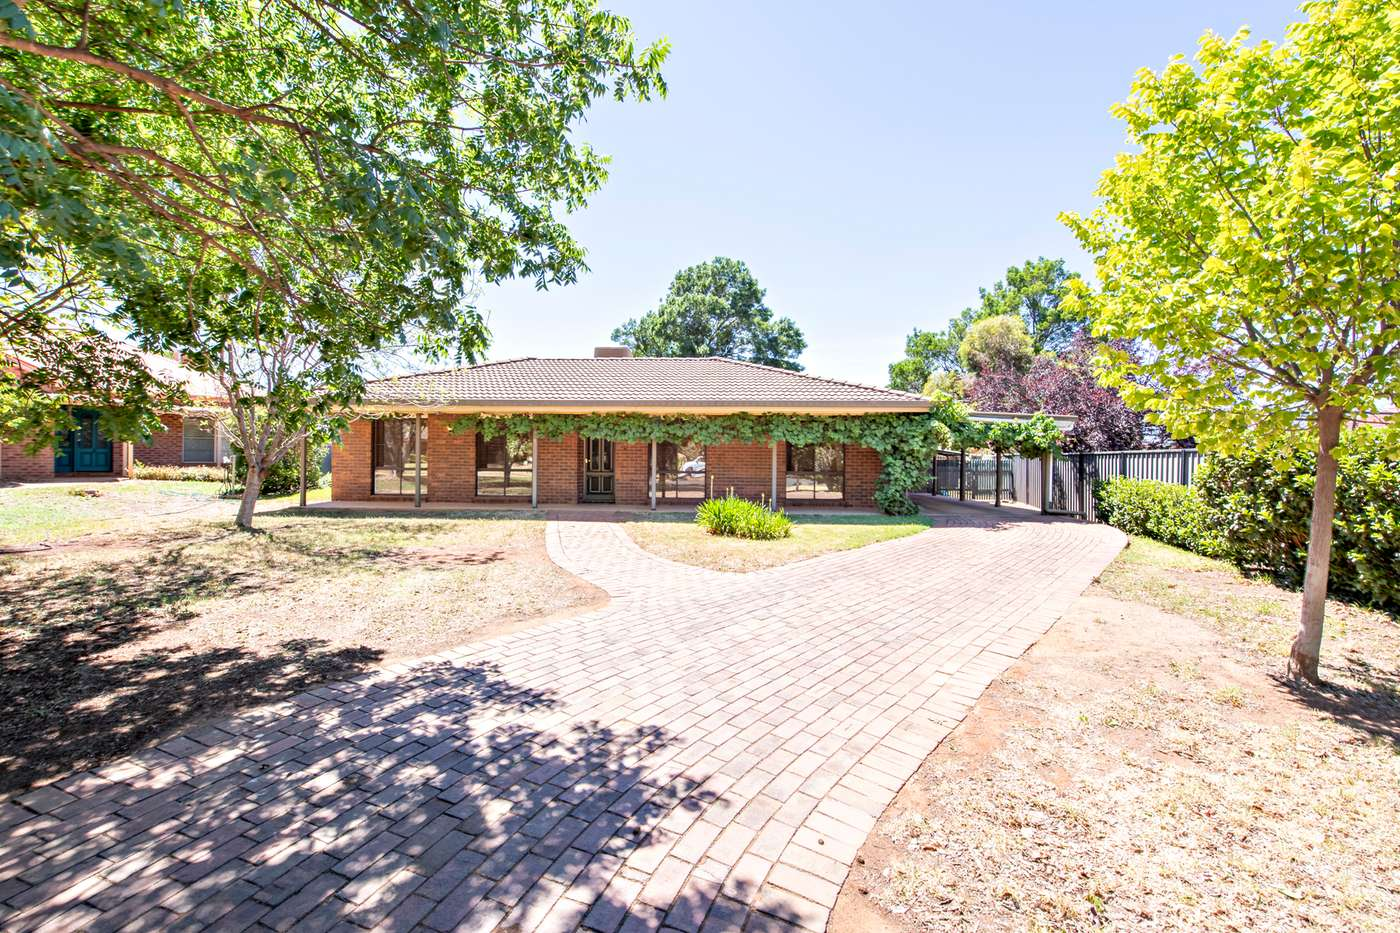 Main view of Homely house listing, 7 Linley Place, Dubbo, NSW 2830